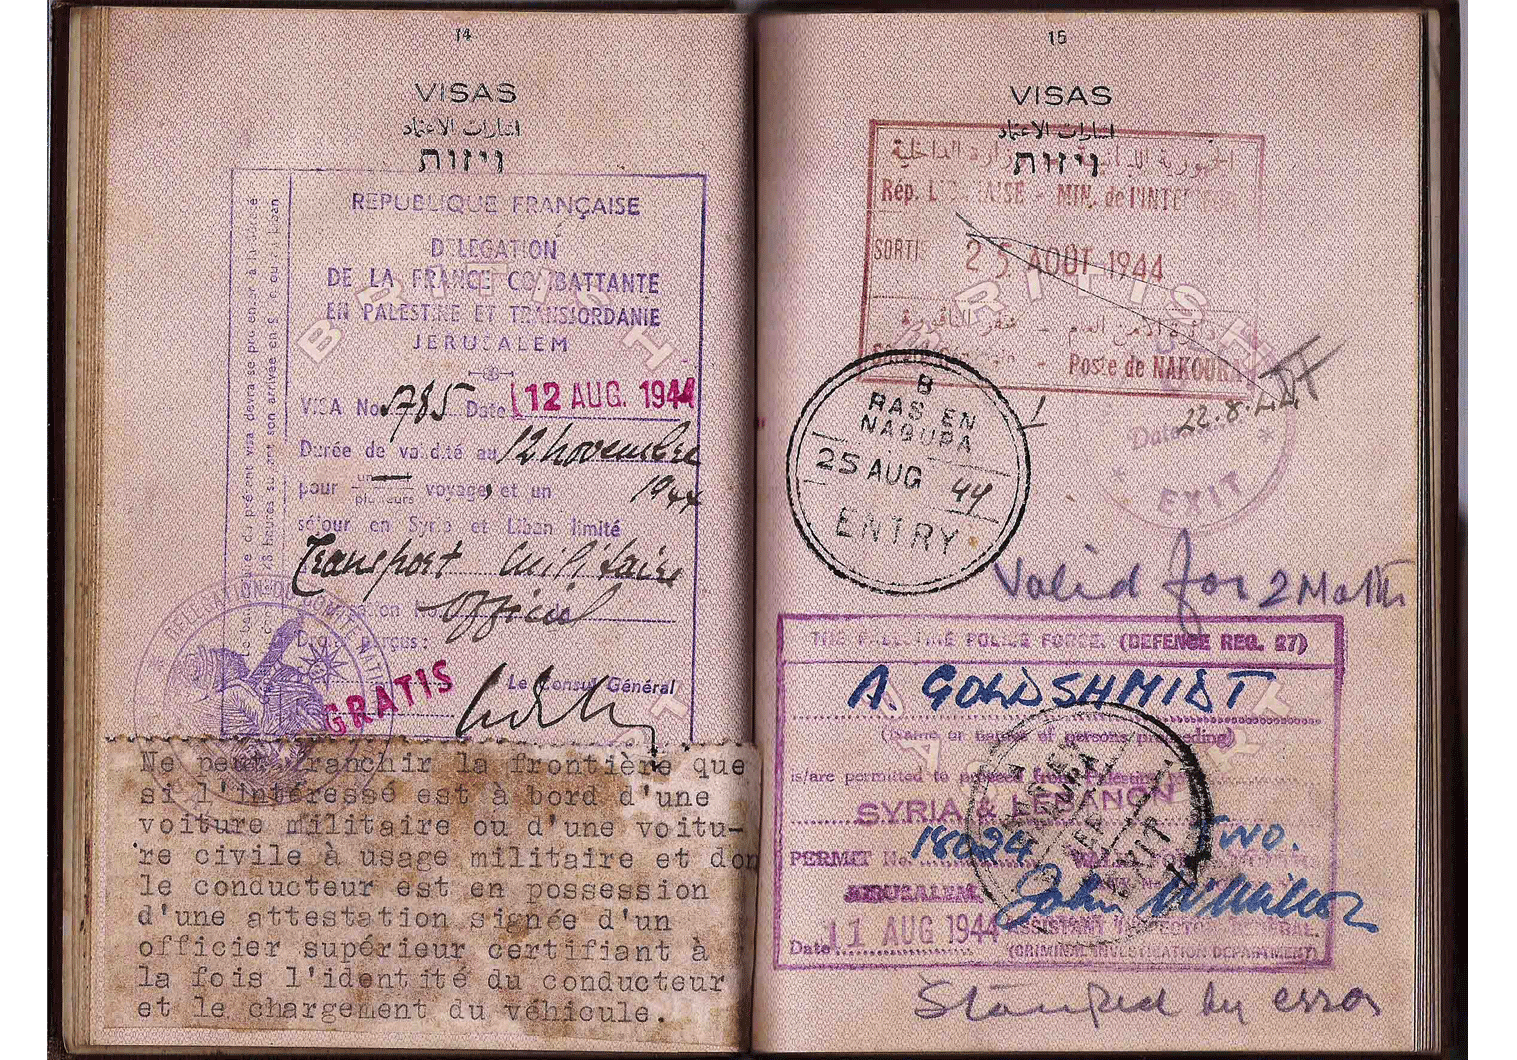 east german visa